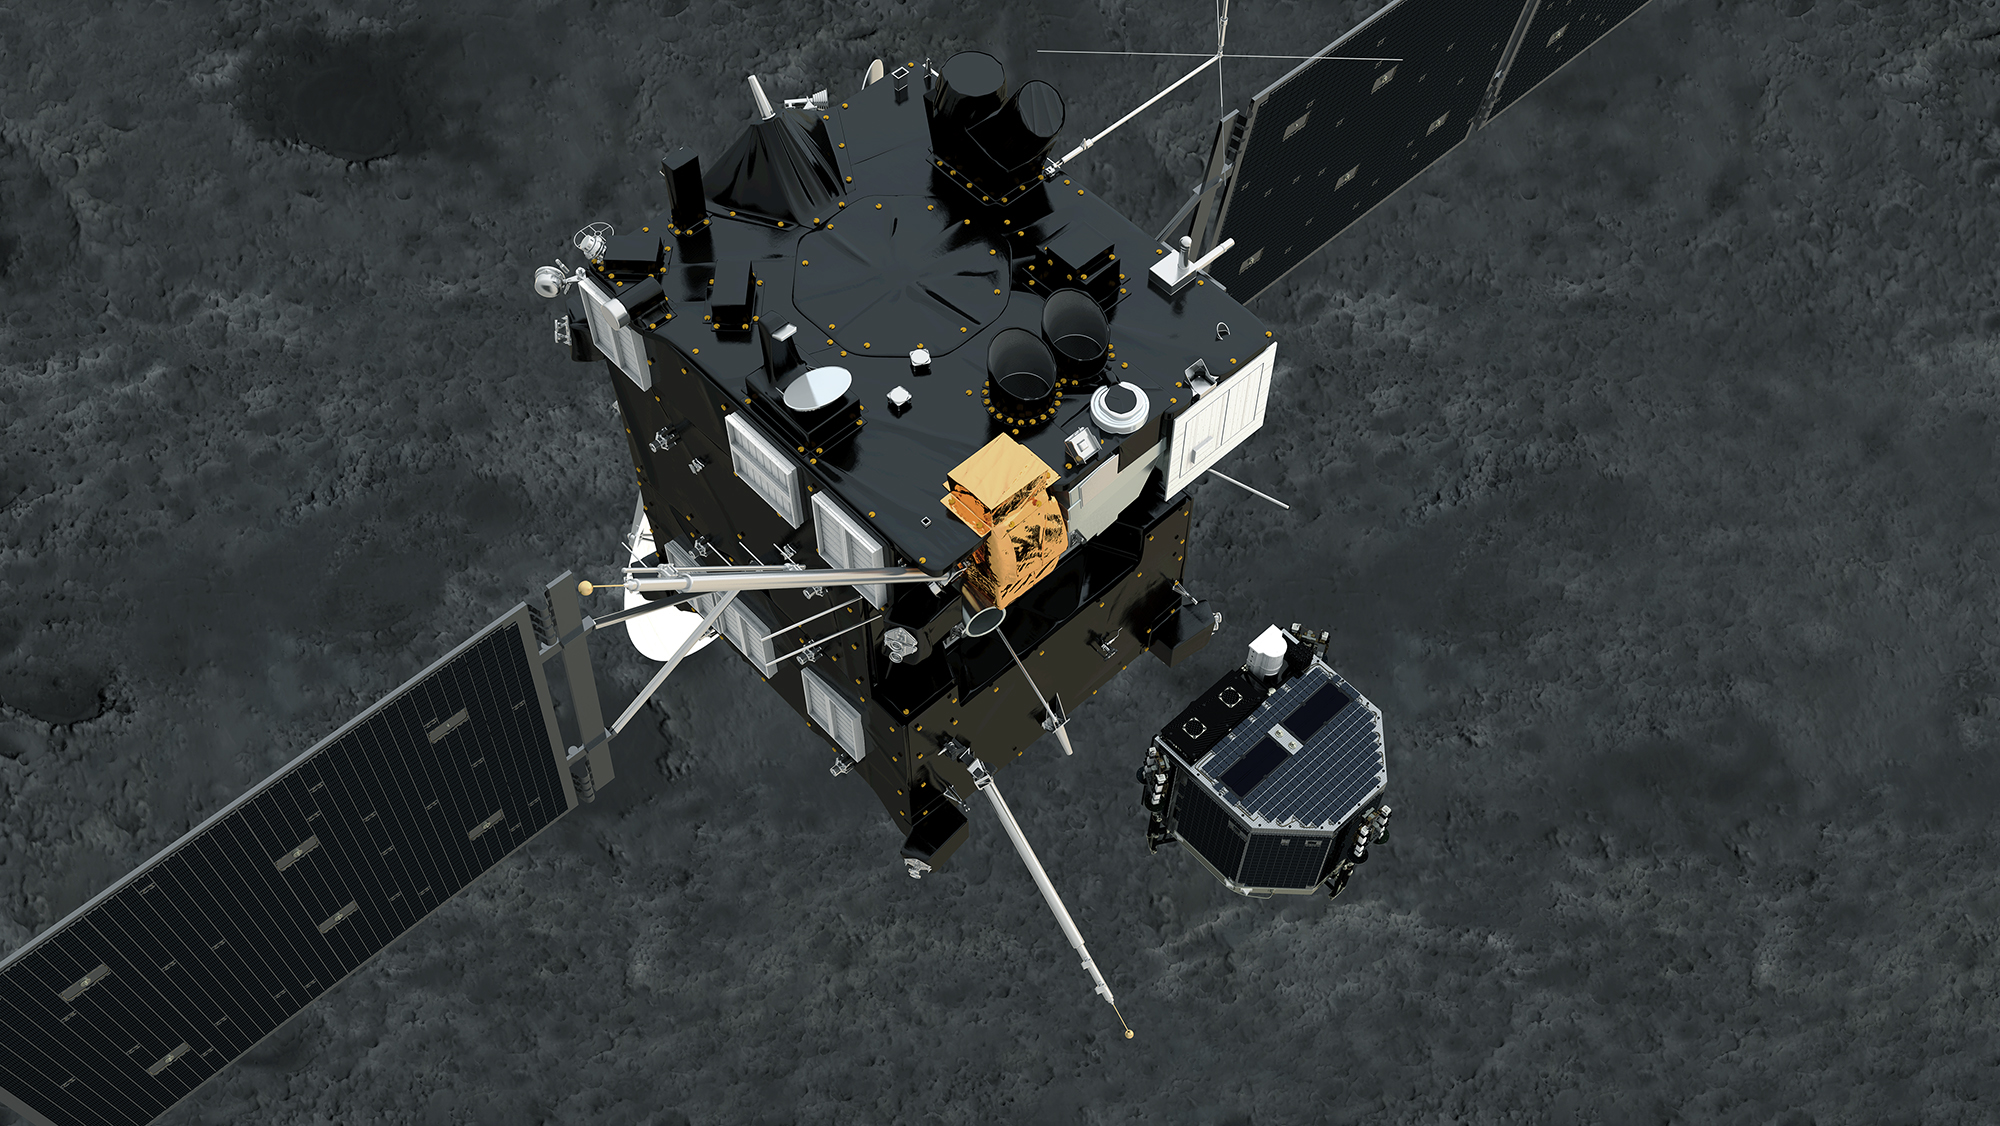 philae comet lander nasa - photo #20